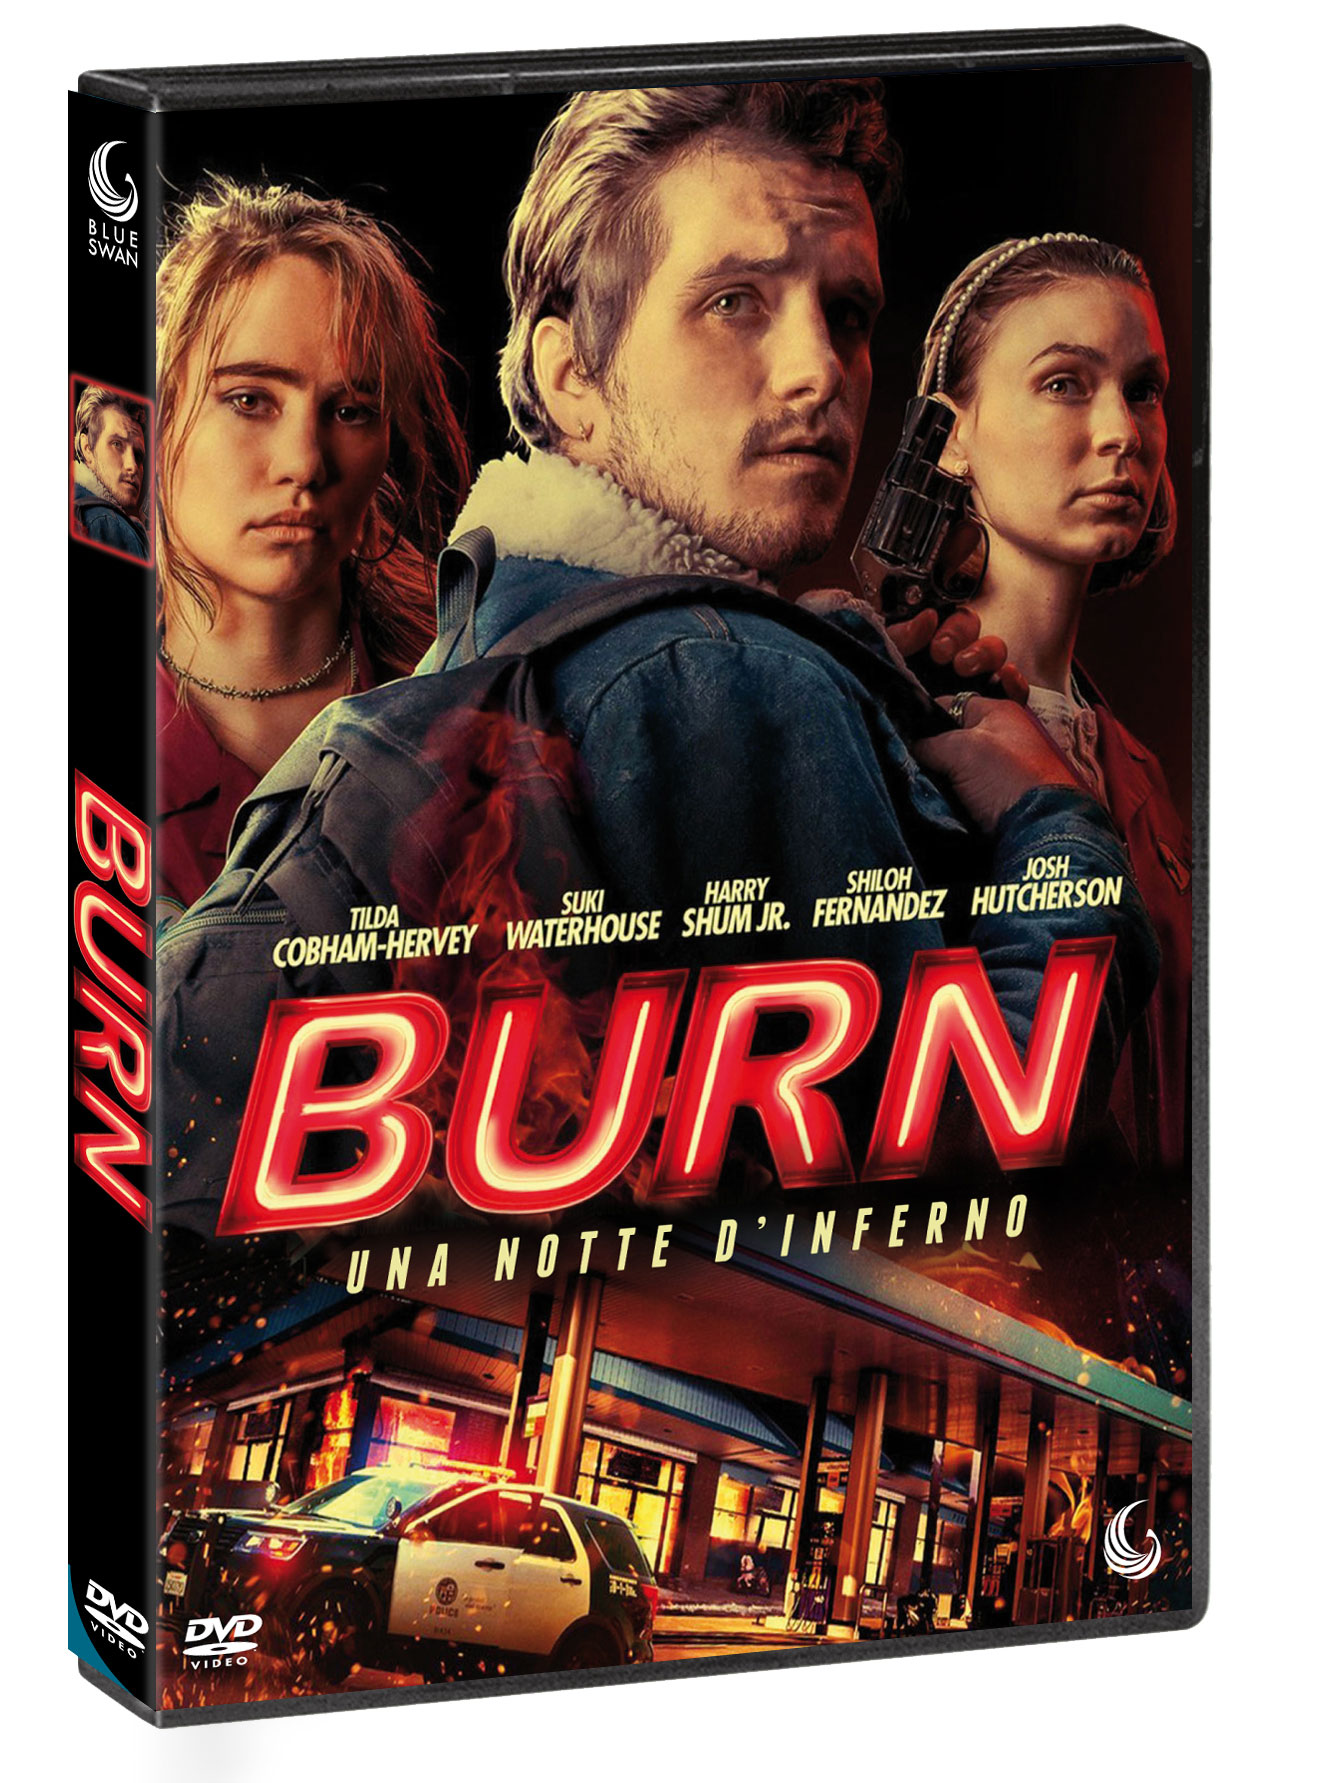 BURN - UNA NOTTE D'INFERNO (DVD)